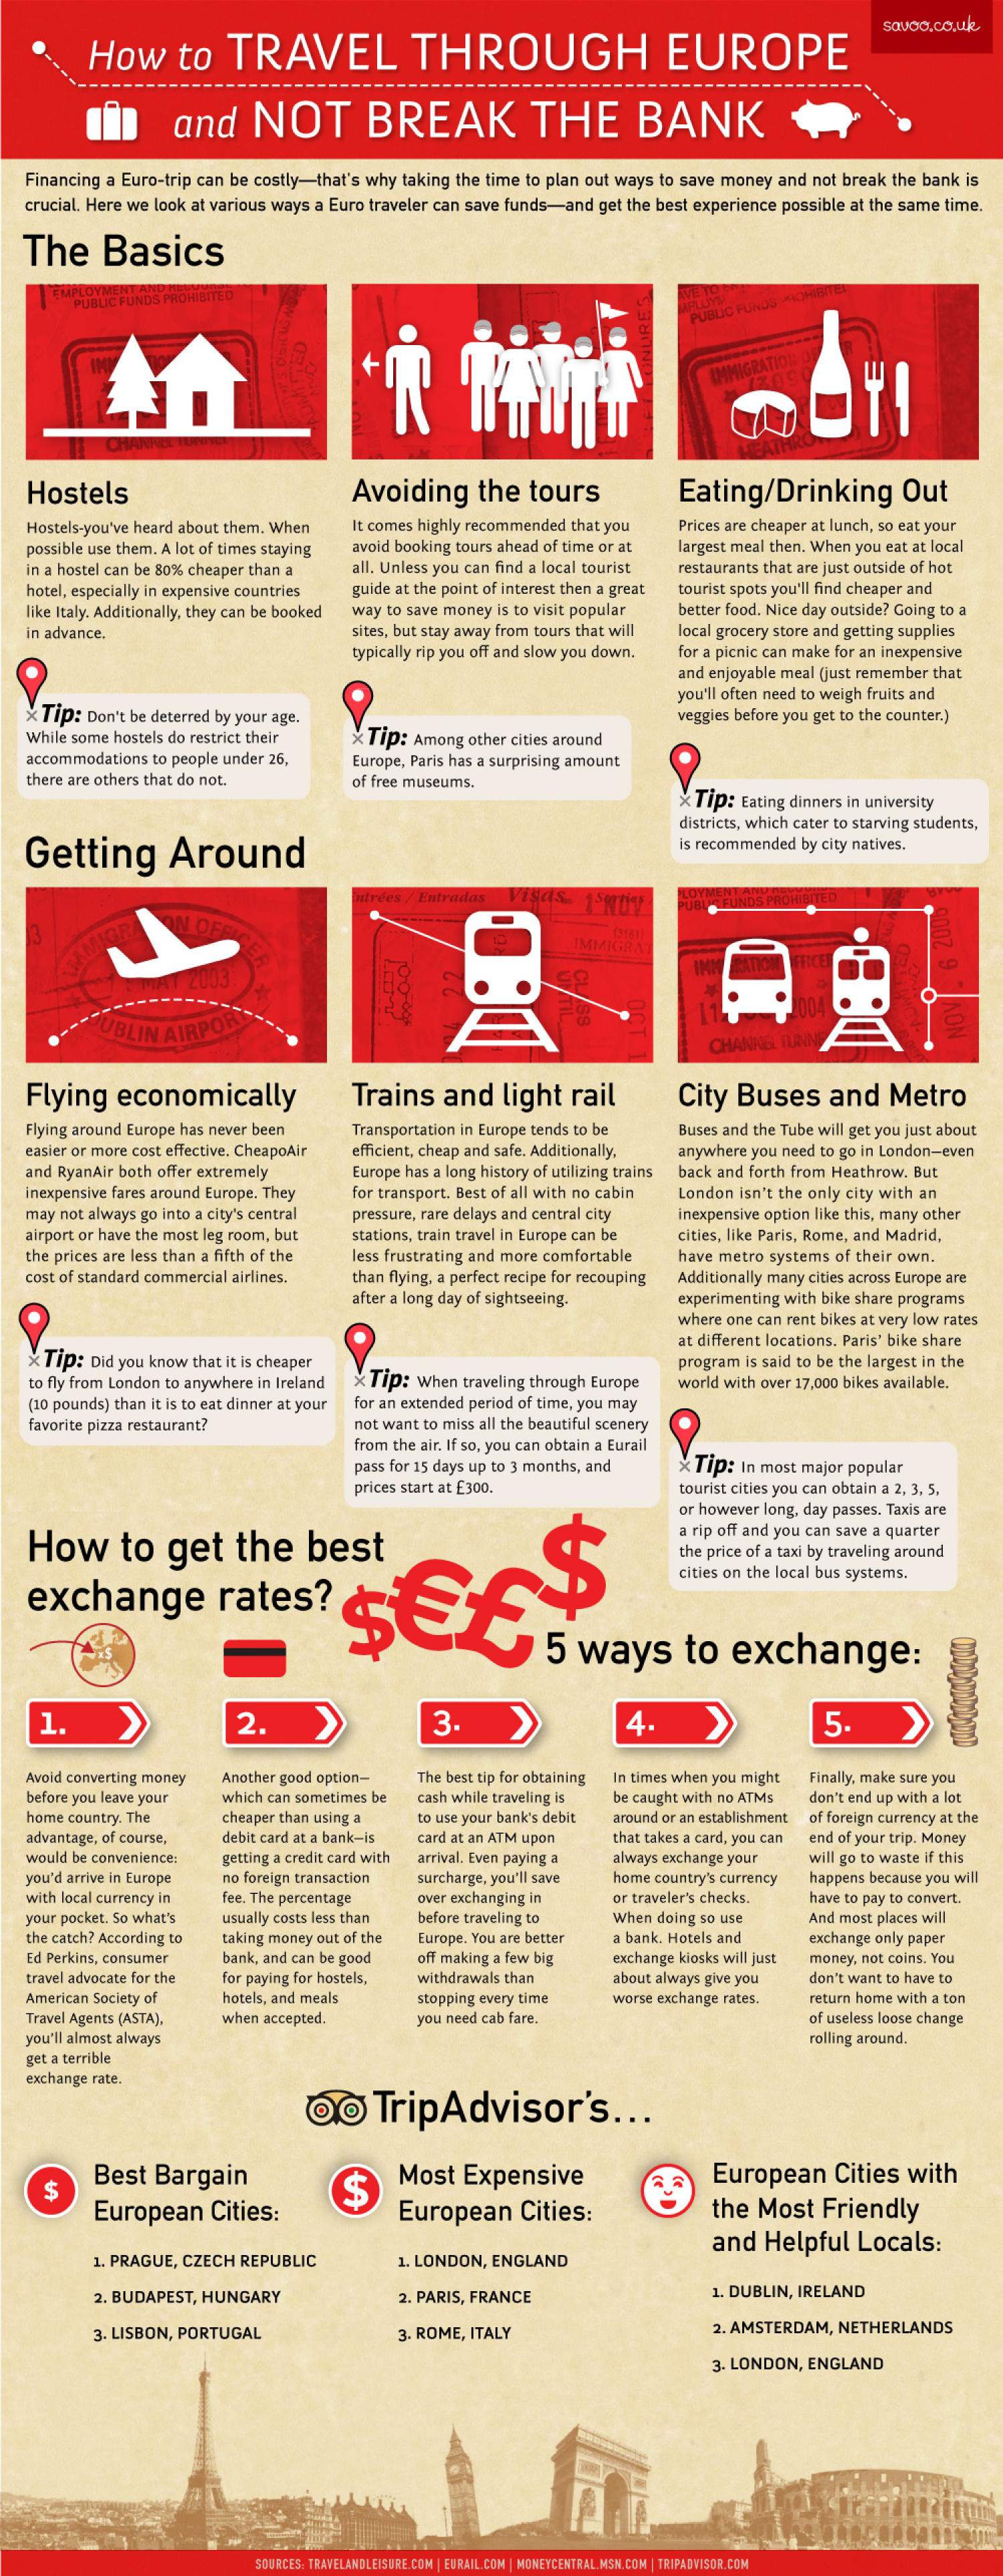 How To Travel Through Europe And Not Break The Bank Infographic